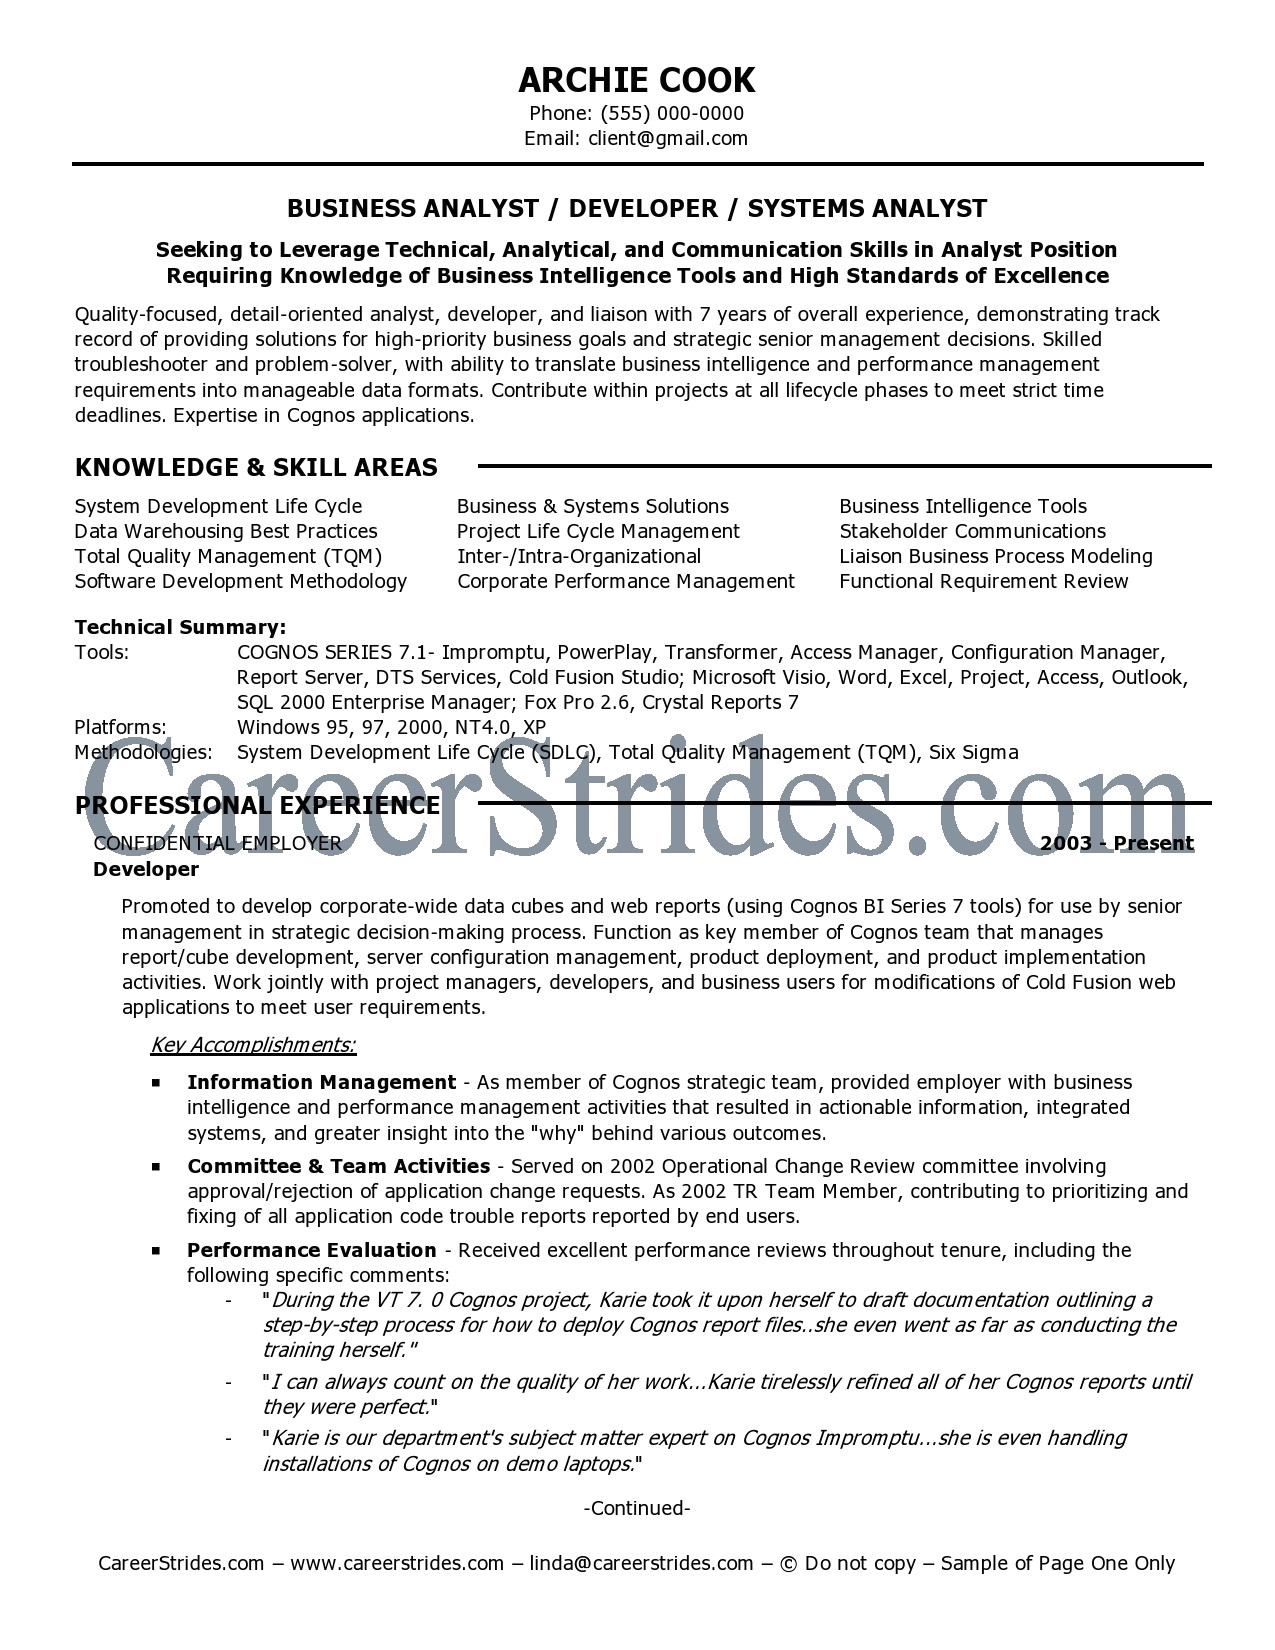 Sample Resume for Business Analyst In Banking Domain Resume for Business Analyst In Banking Domain Danaya Us